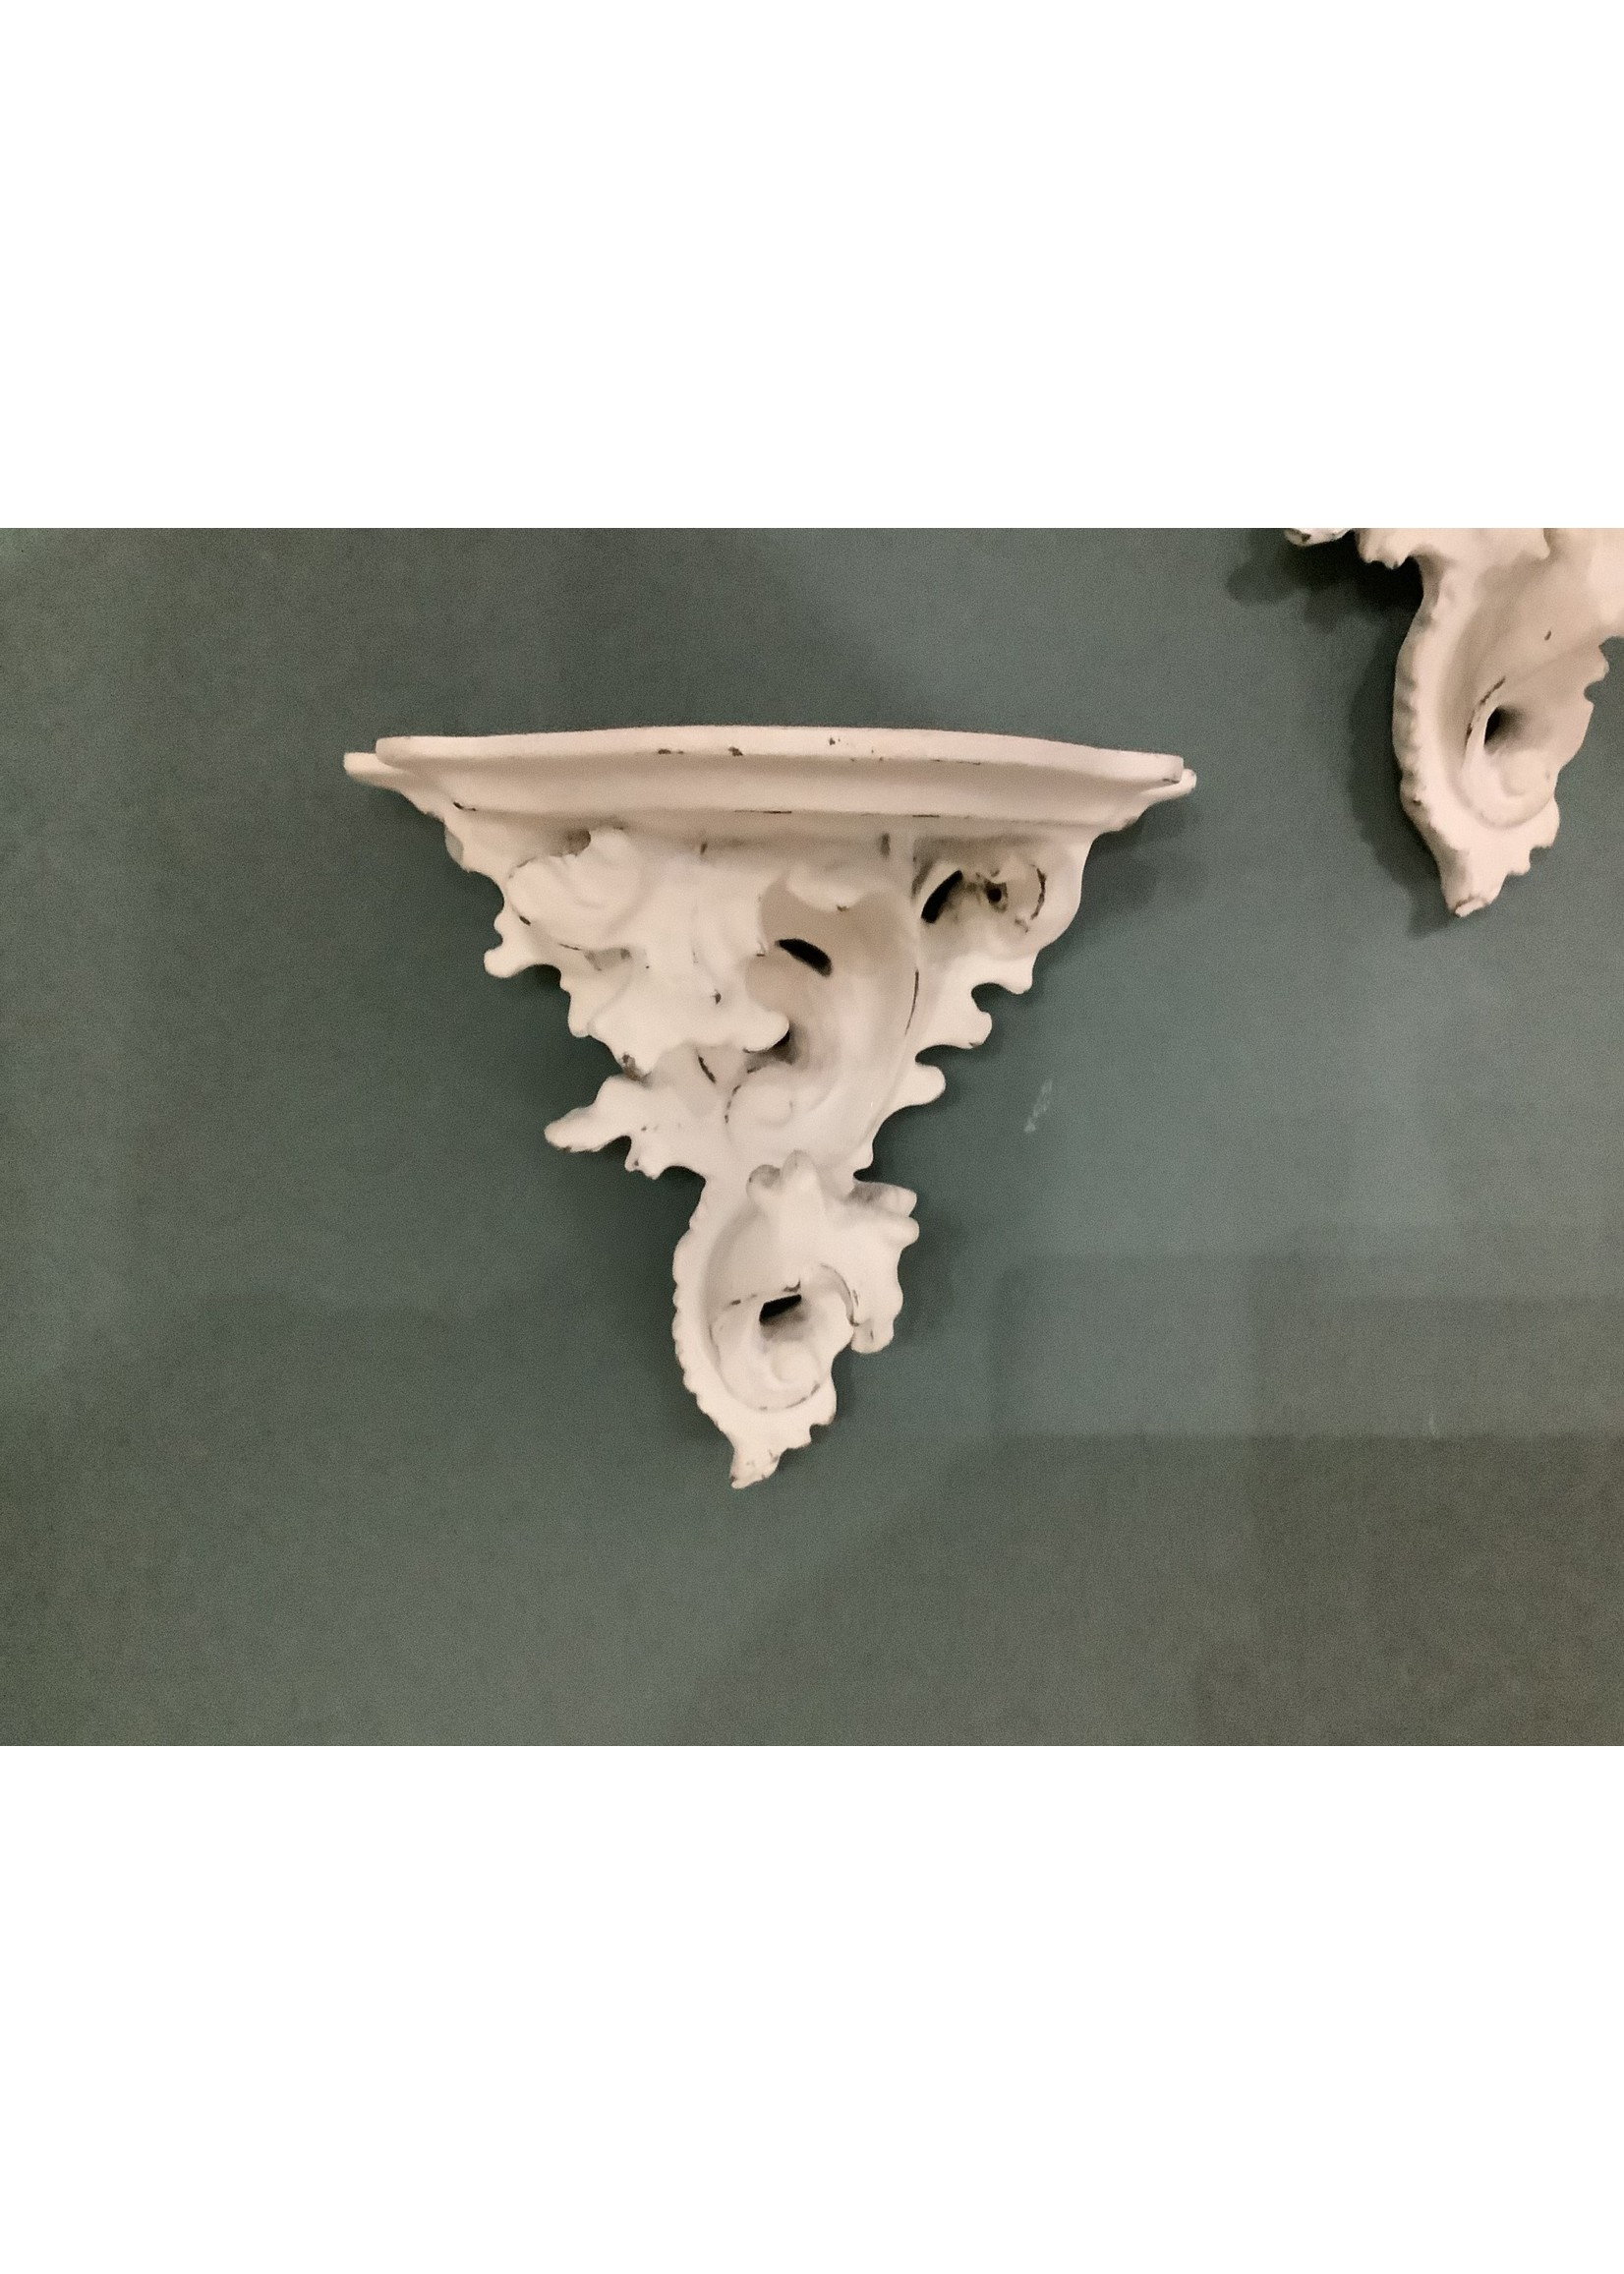 Small wall sconce 12cm tall x 14cm wide